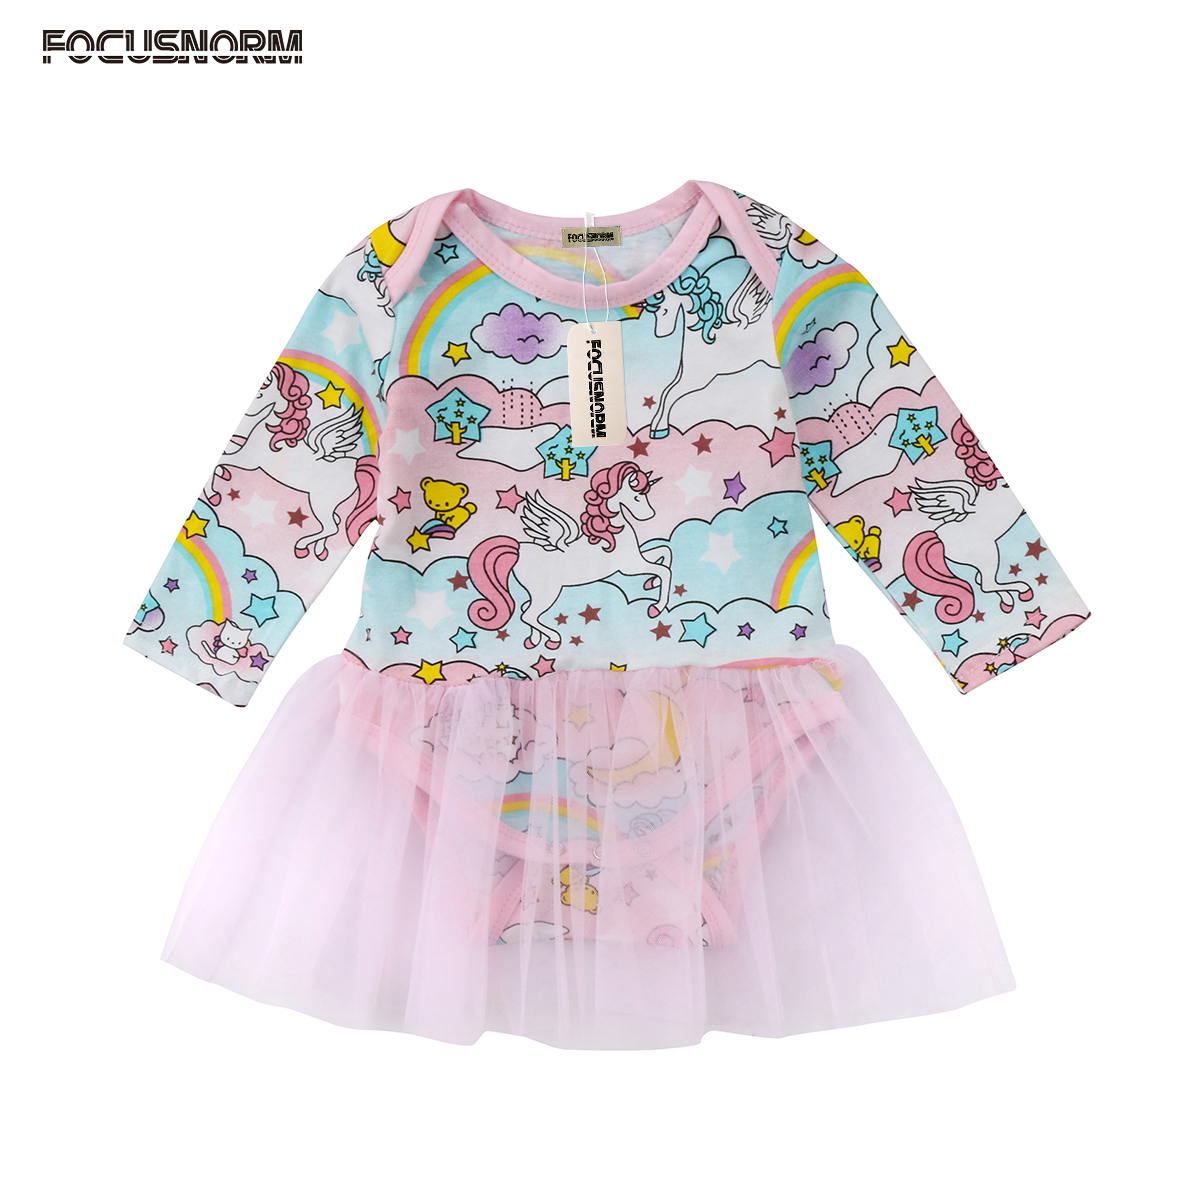 Newborn Baby Girls Unicorn Cartoon Long Sleeves Romper One Piece Tulle Jumpsuit Romper Dress Clothes